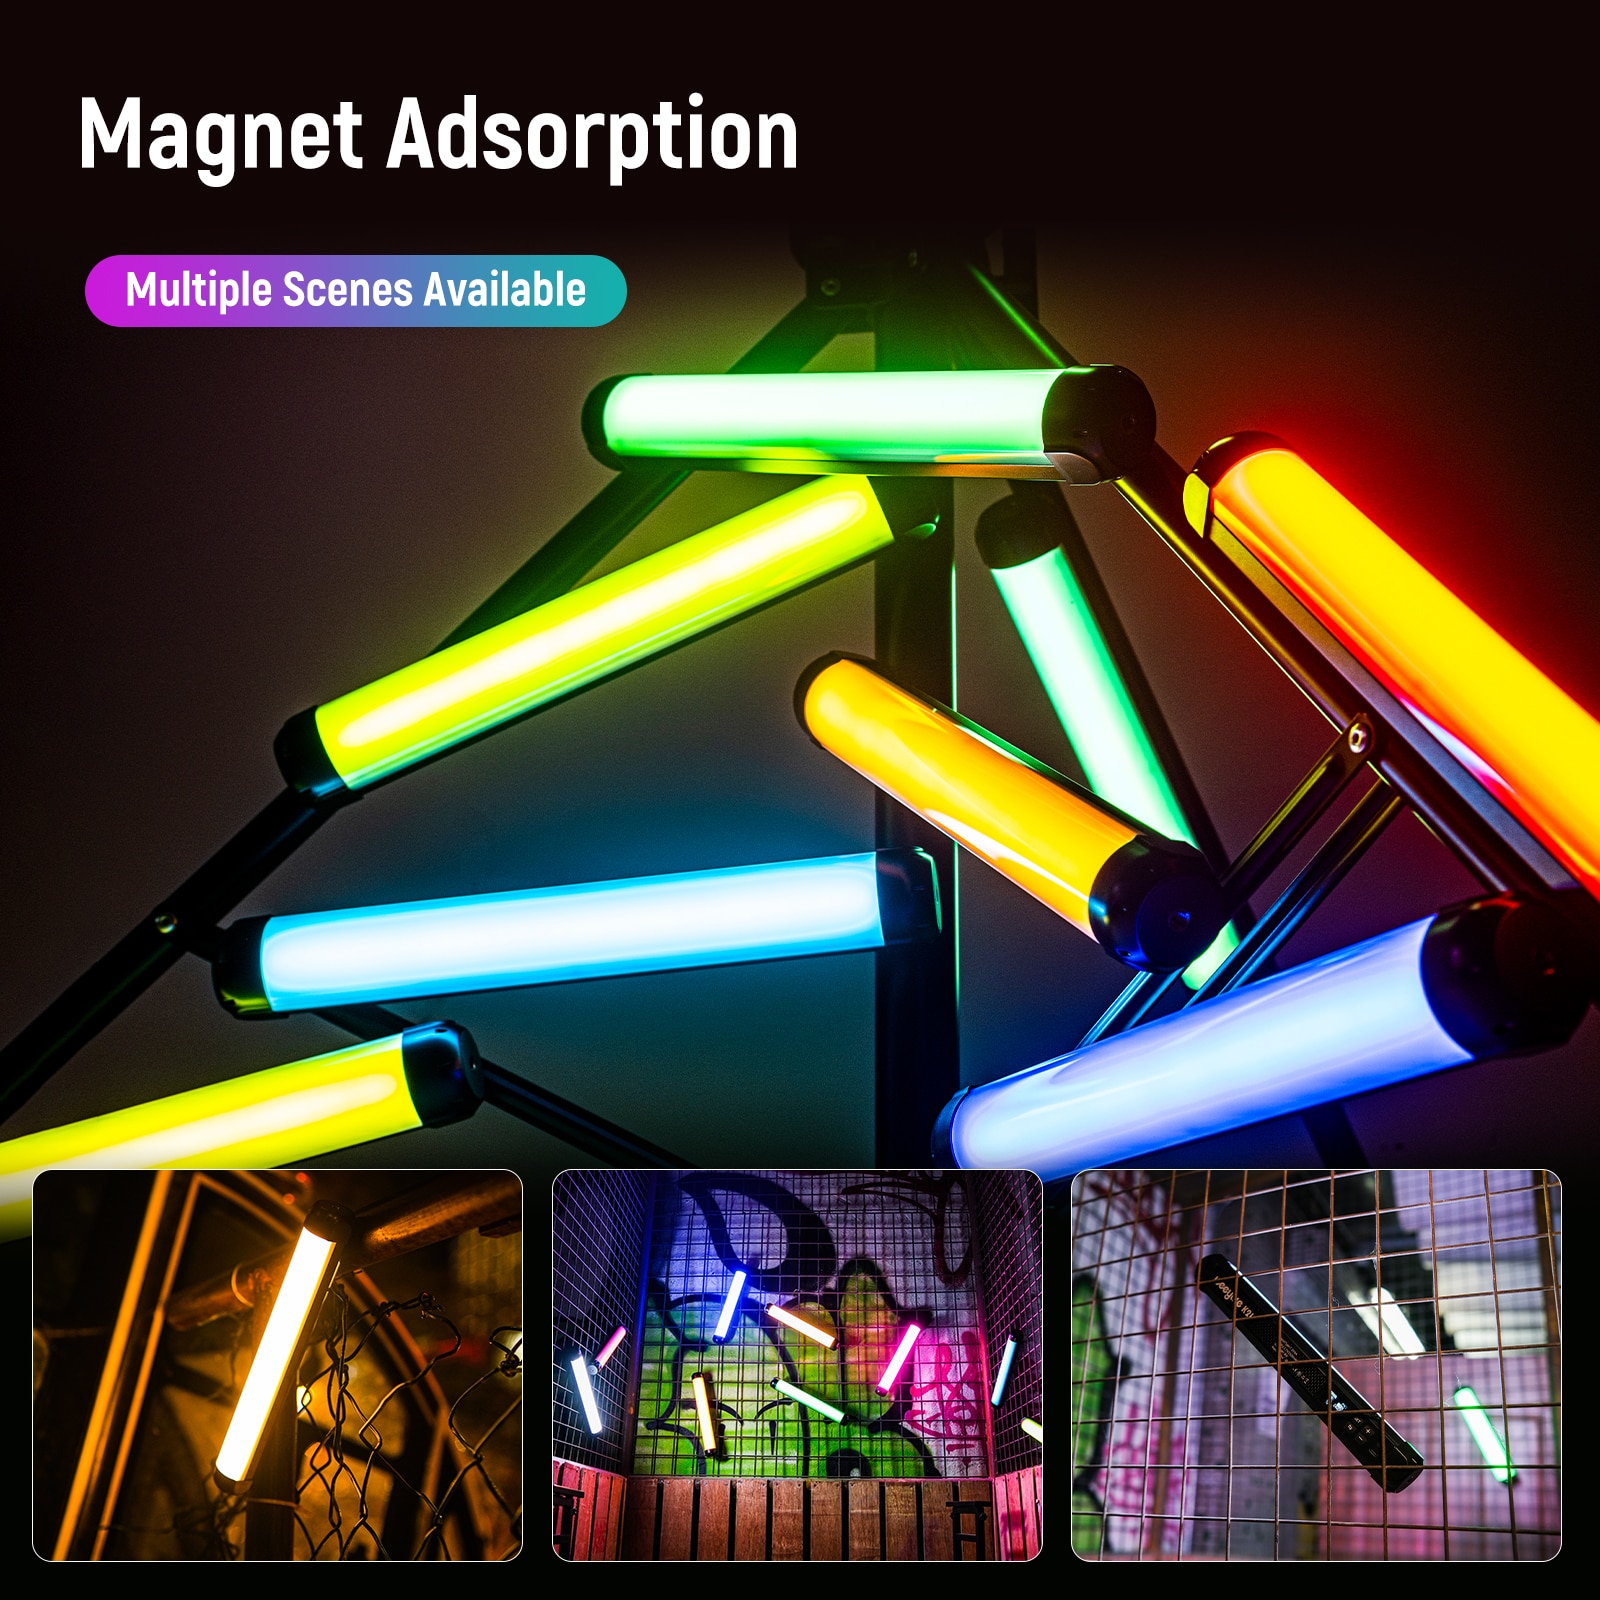 Weeylite K21 8W RGB Colorful Ice Light Stick LED Video Light Handheld Tube APP Control Magnetic Photography Soft luminary Light enlarge